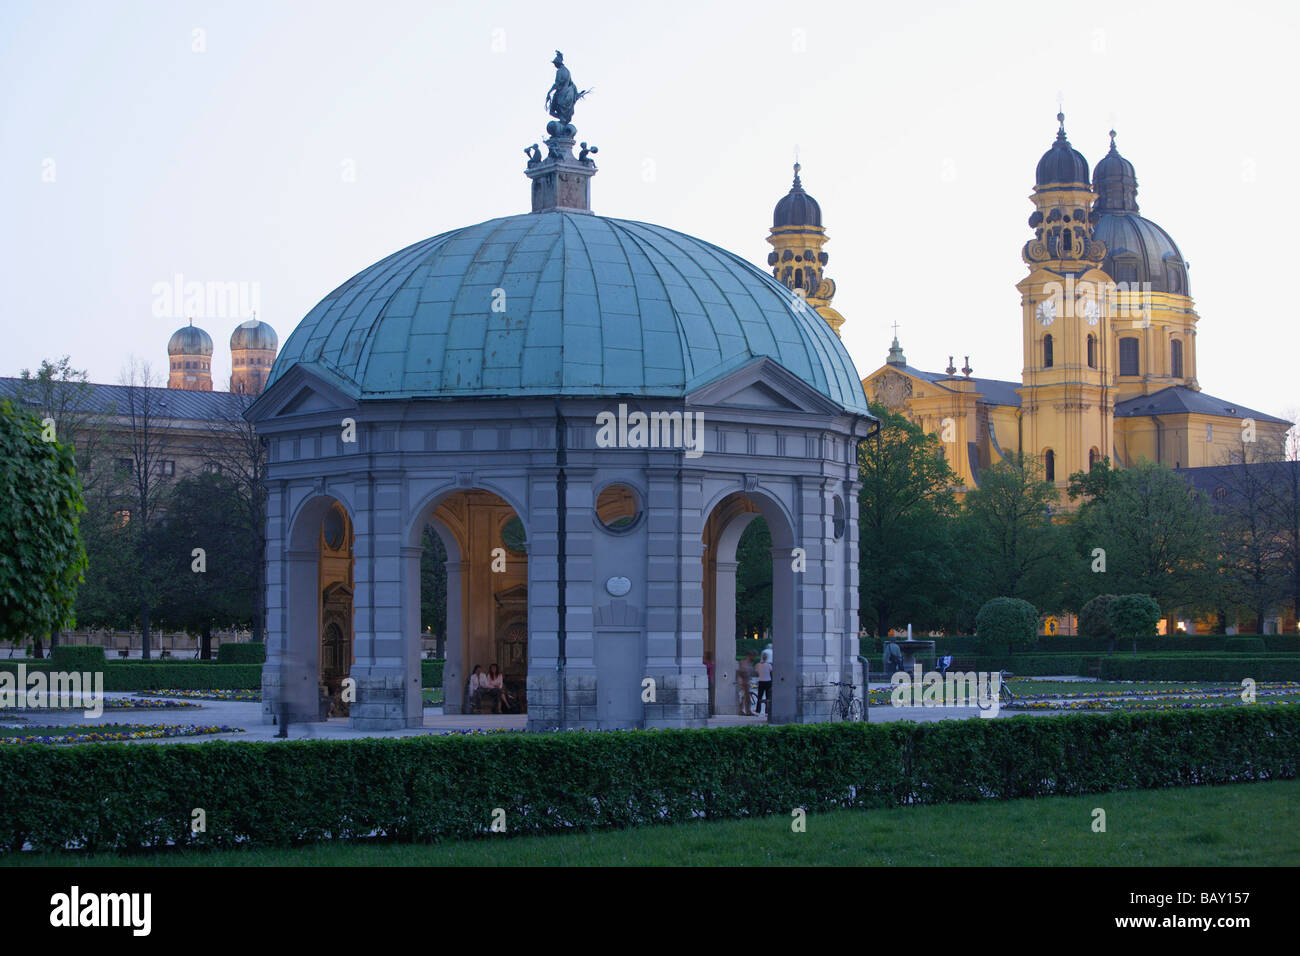 Pavillion at Hofgarten, the onionshaped towers of Frauenkirche and Theatinerkirche in the background, Munich, Bavaria, - Stock Image